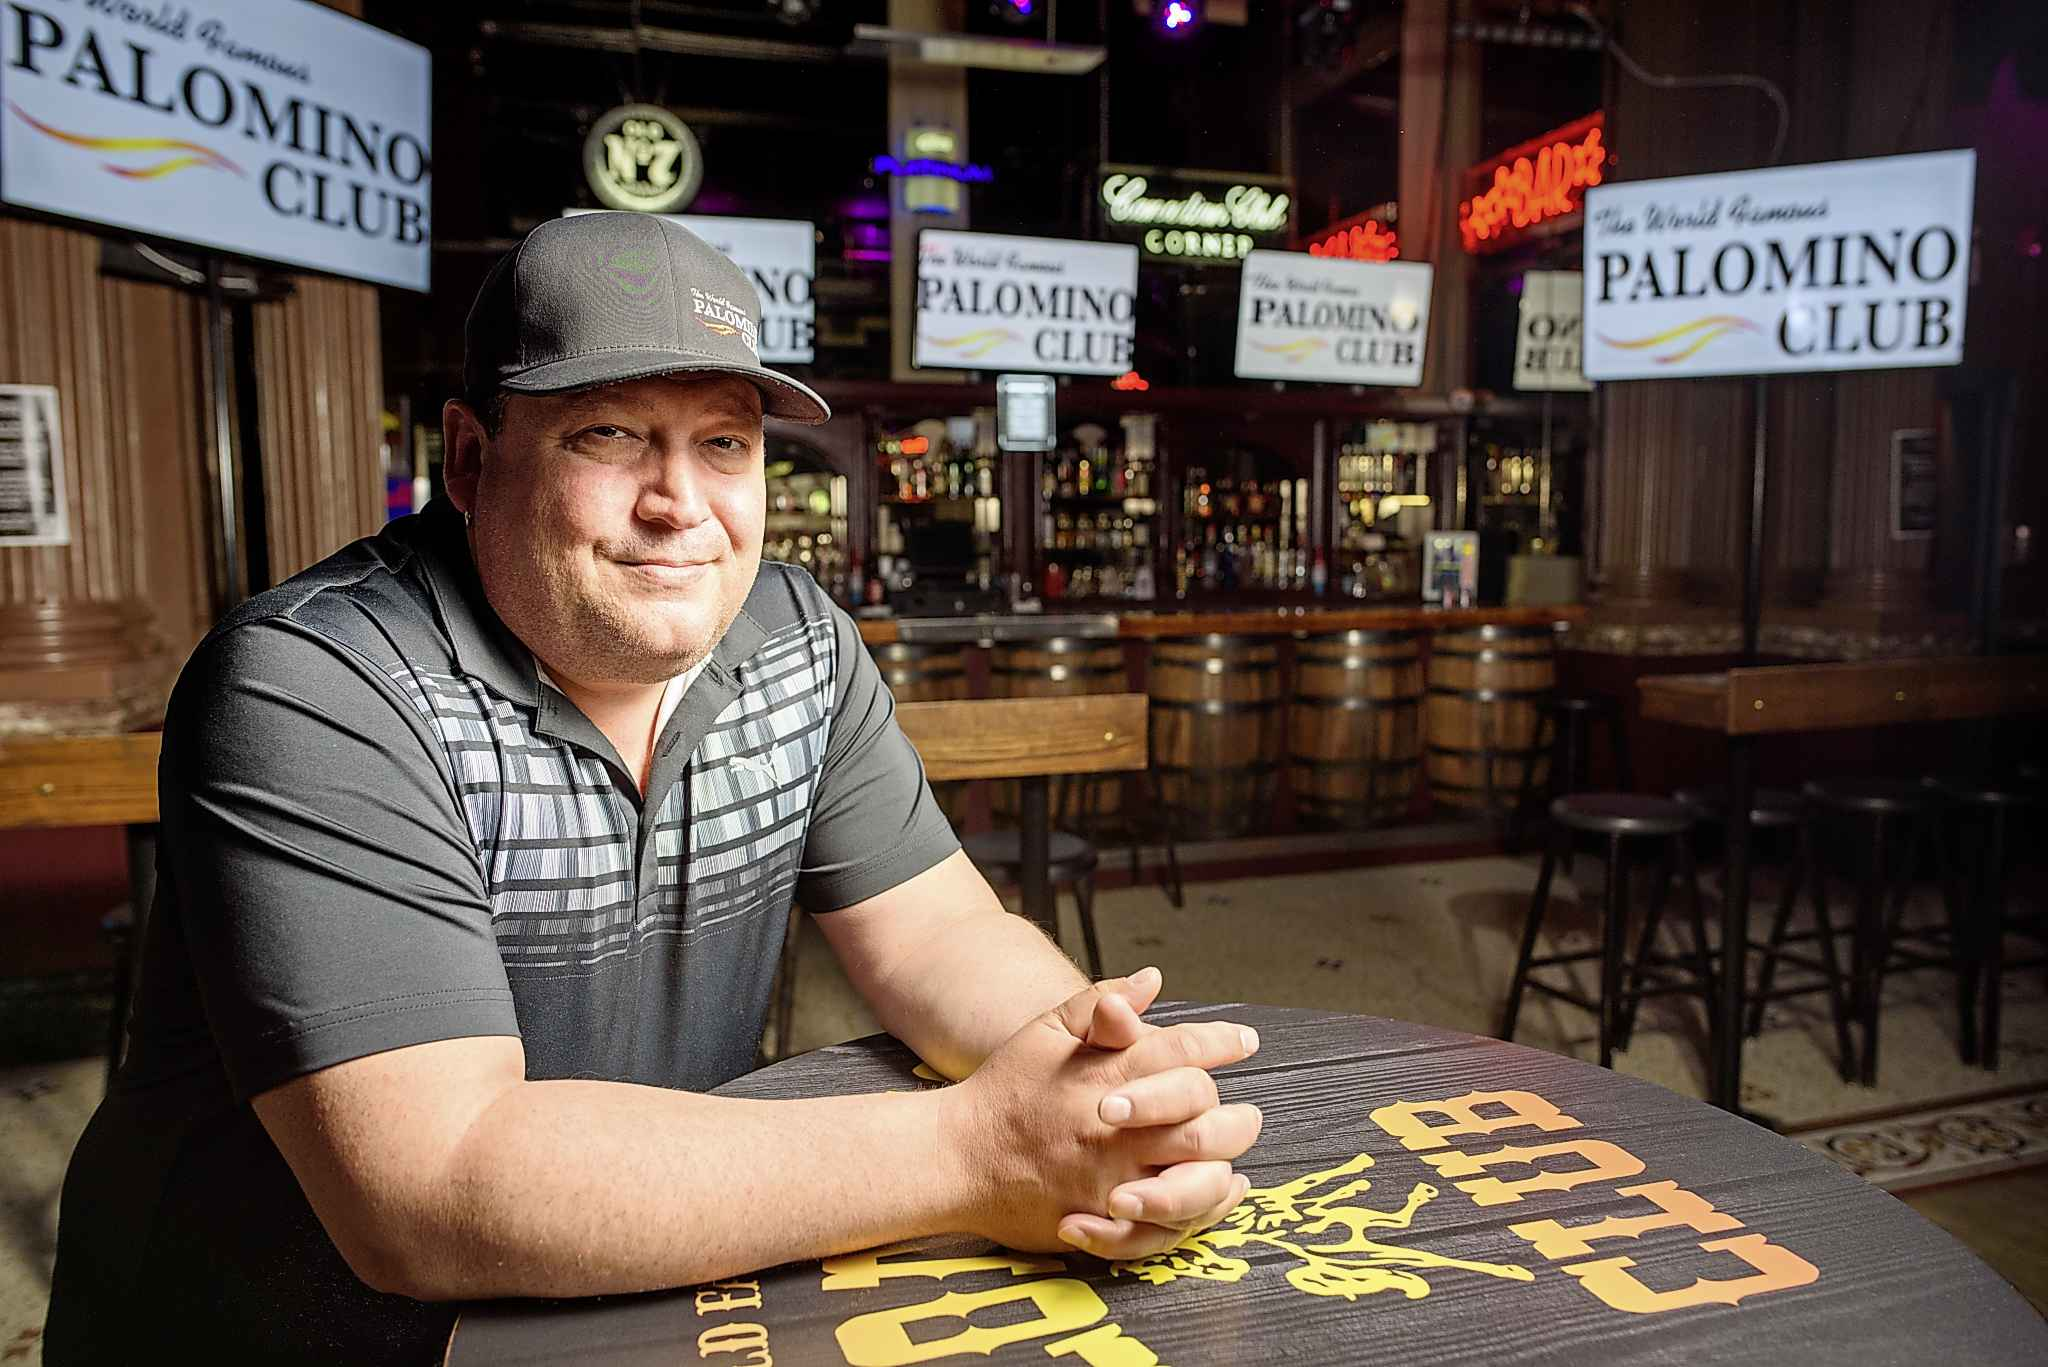 Christian Stringer, owner of the Palomino Club in downtown Winnipeg.